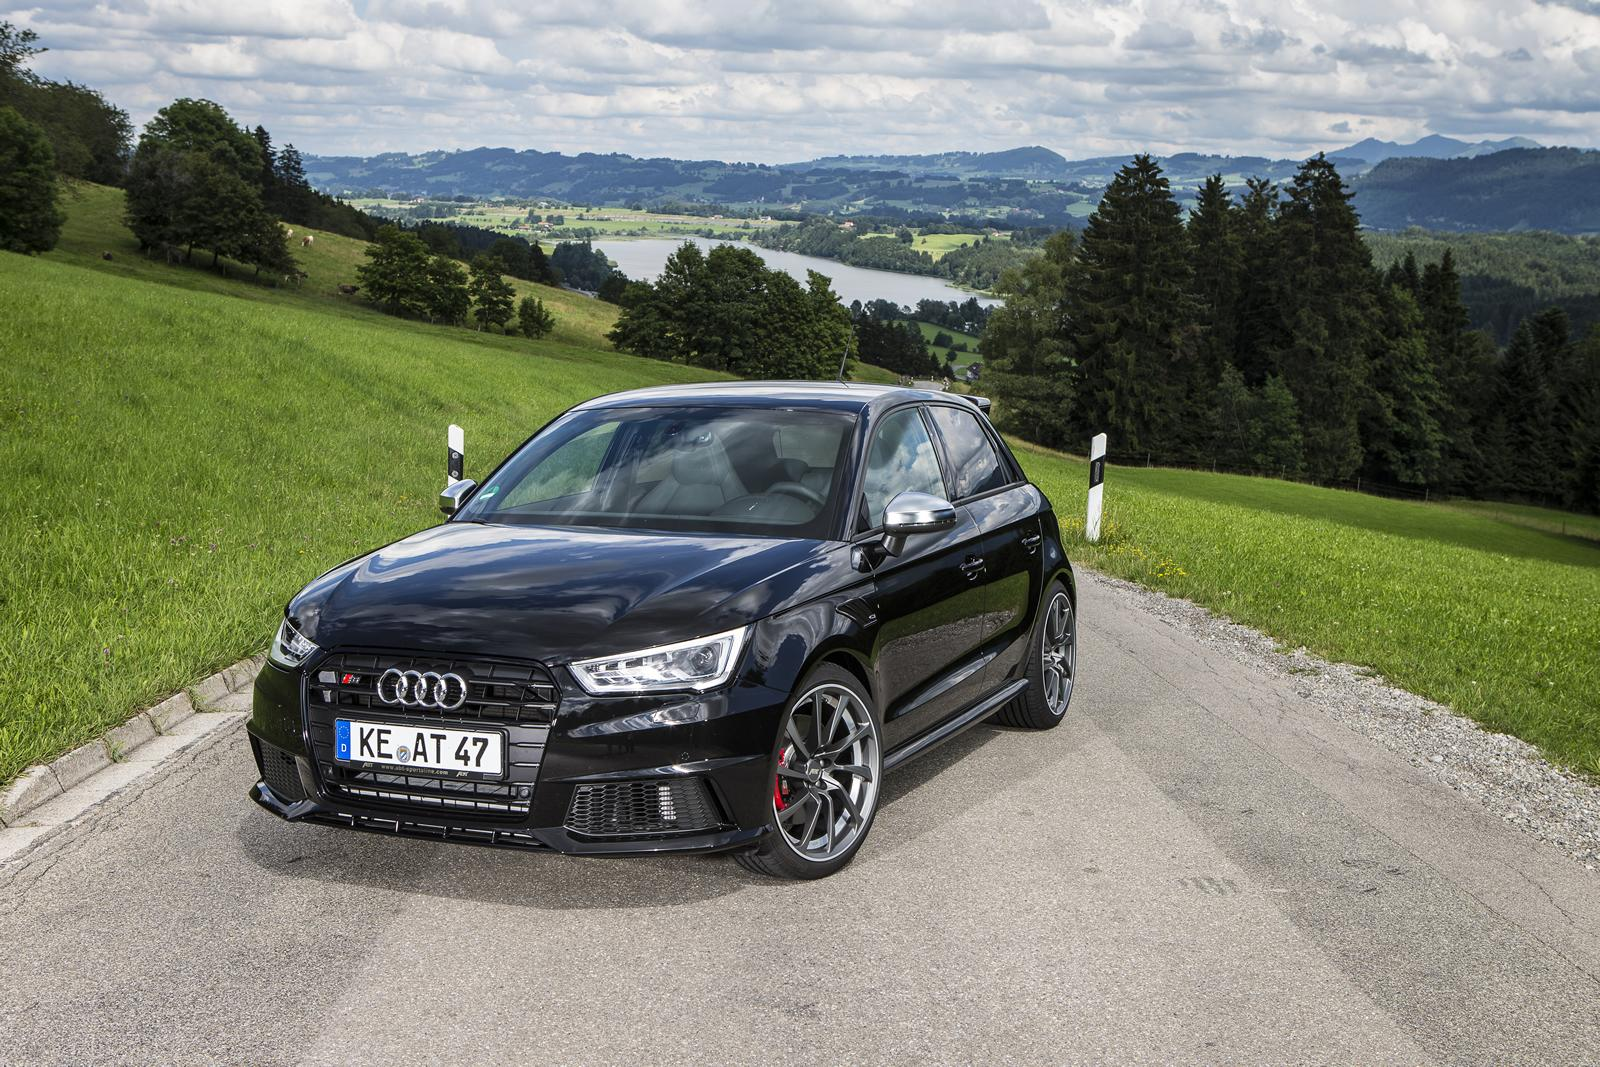 ABT-Tuned Audi S1 Has More Power than the S3 - autoevolution